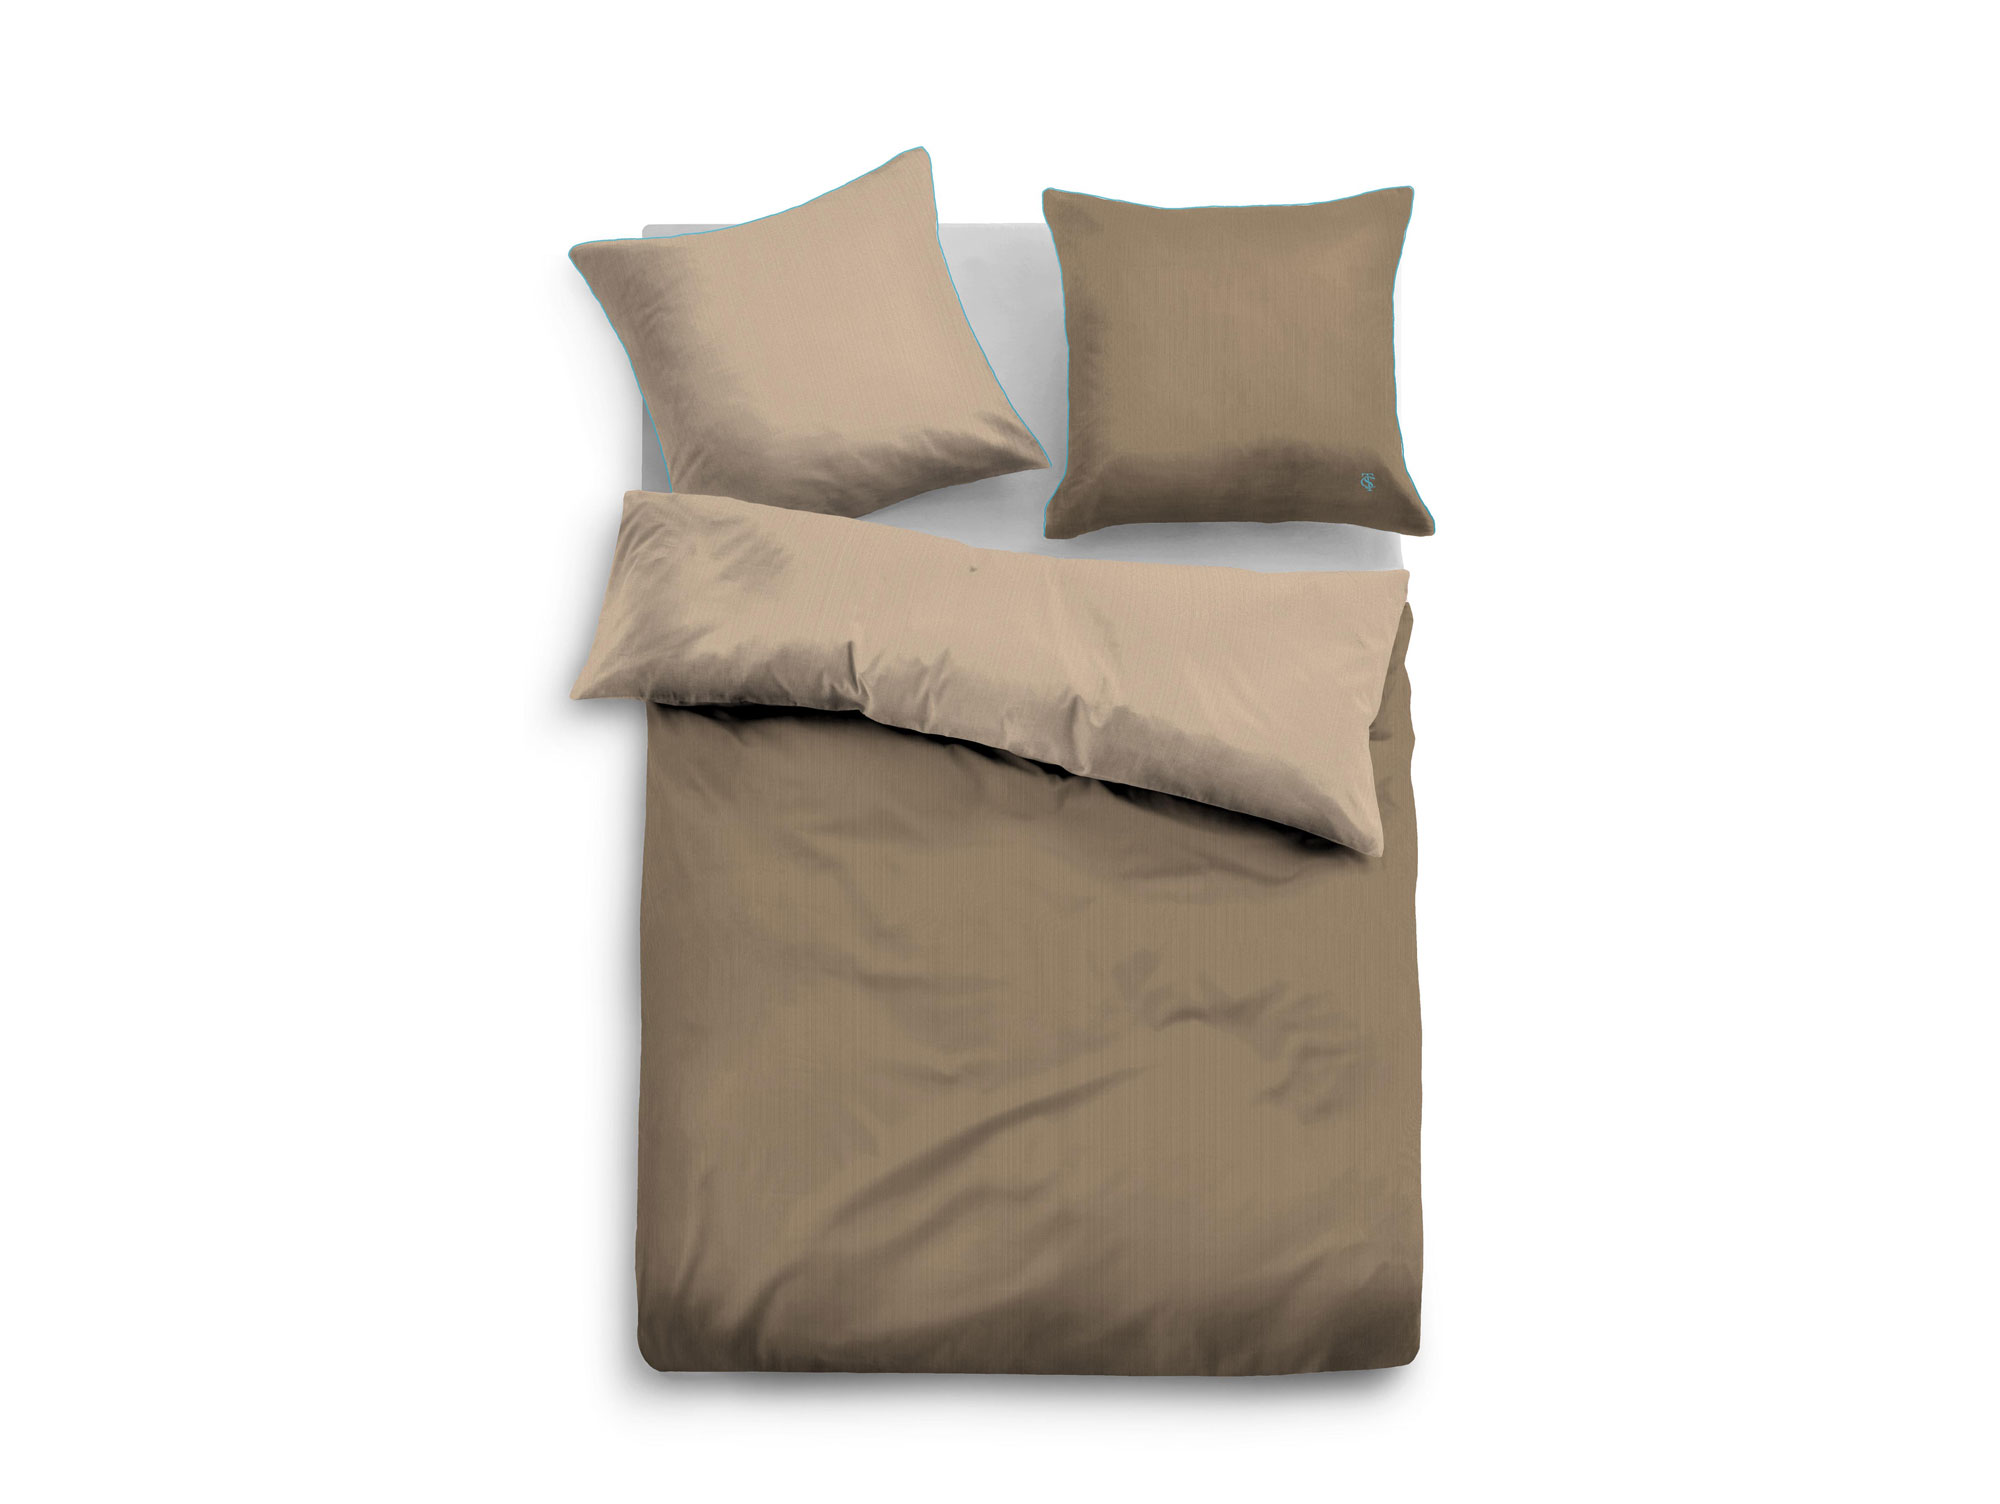 Tom Tailor Bettwäsche 135x200 Tom Tailor Bettwäsche Satin Bed Linen 135x200 4380x80